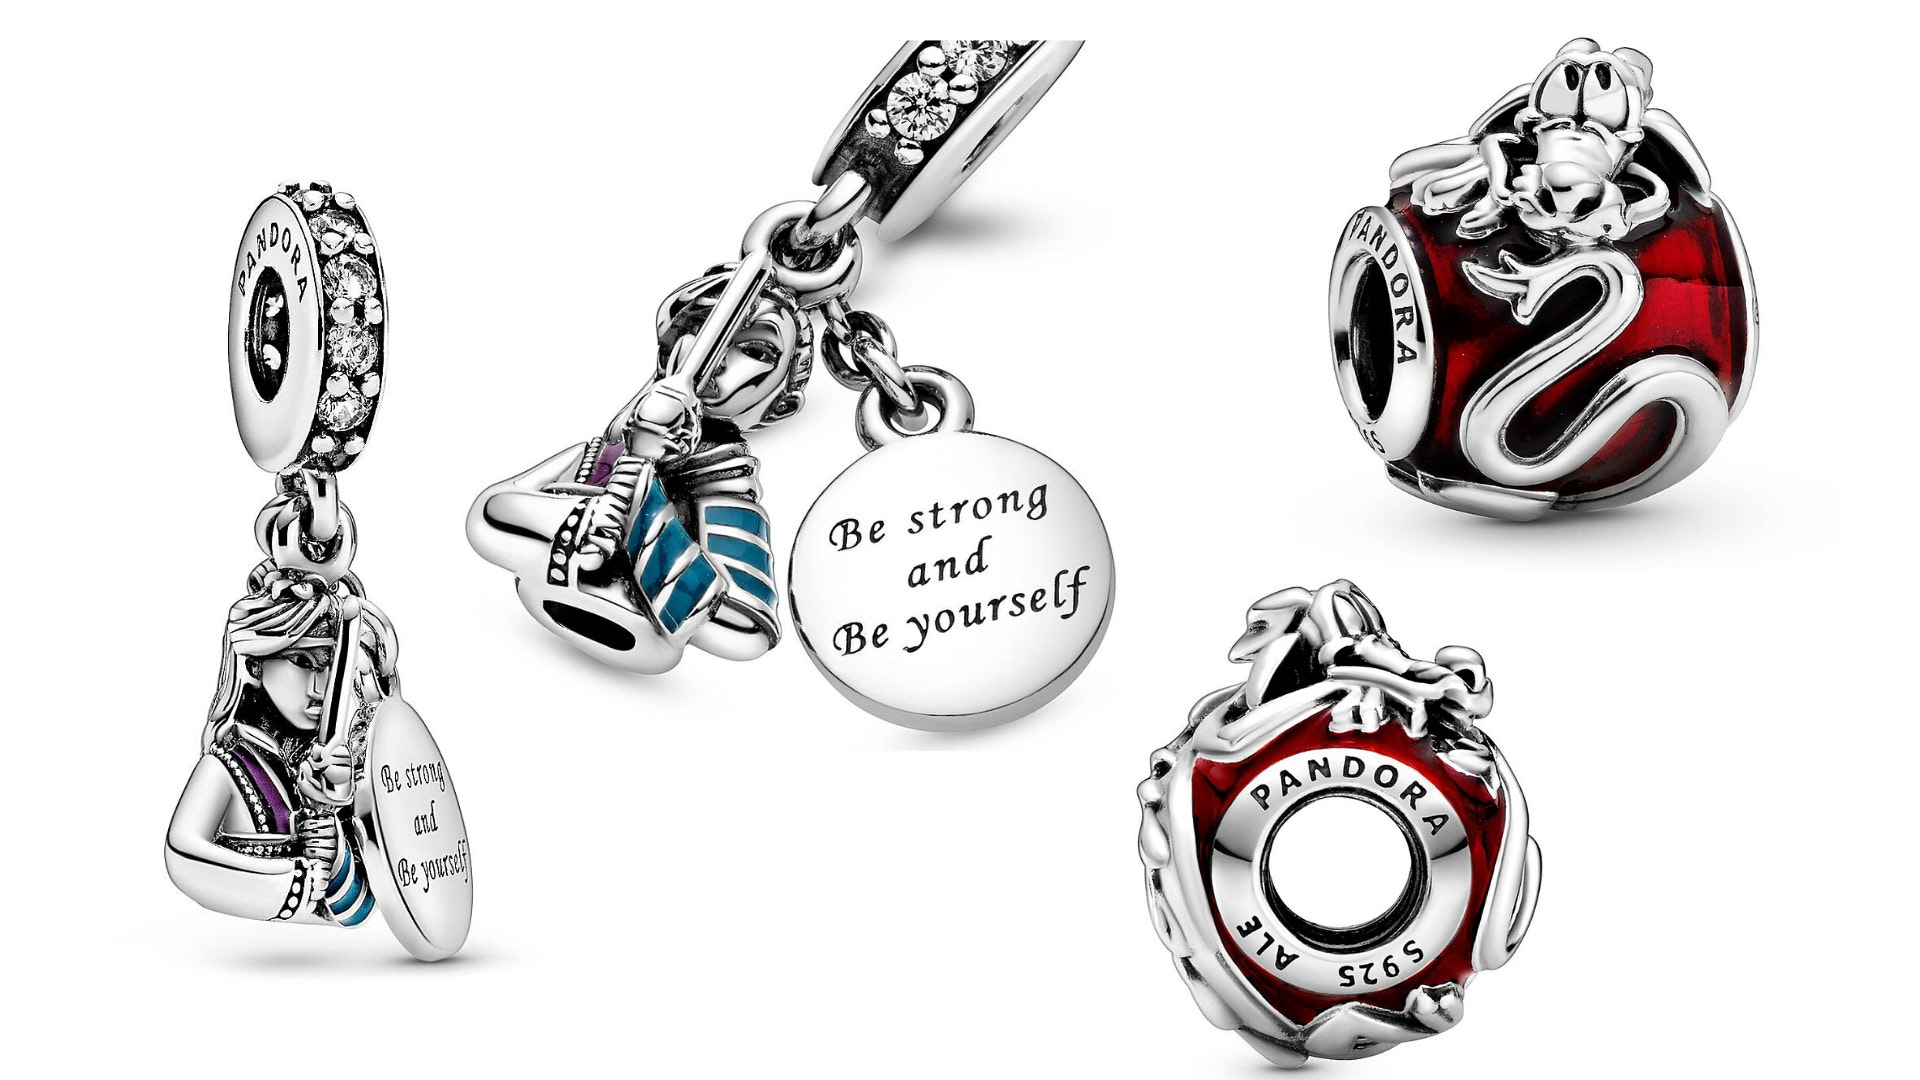 Shop New Mulan And Mushu Pandora Charms Bring Honor To Us All On Shopdisney Wdw News Today